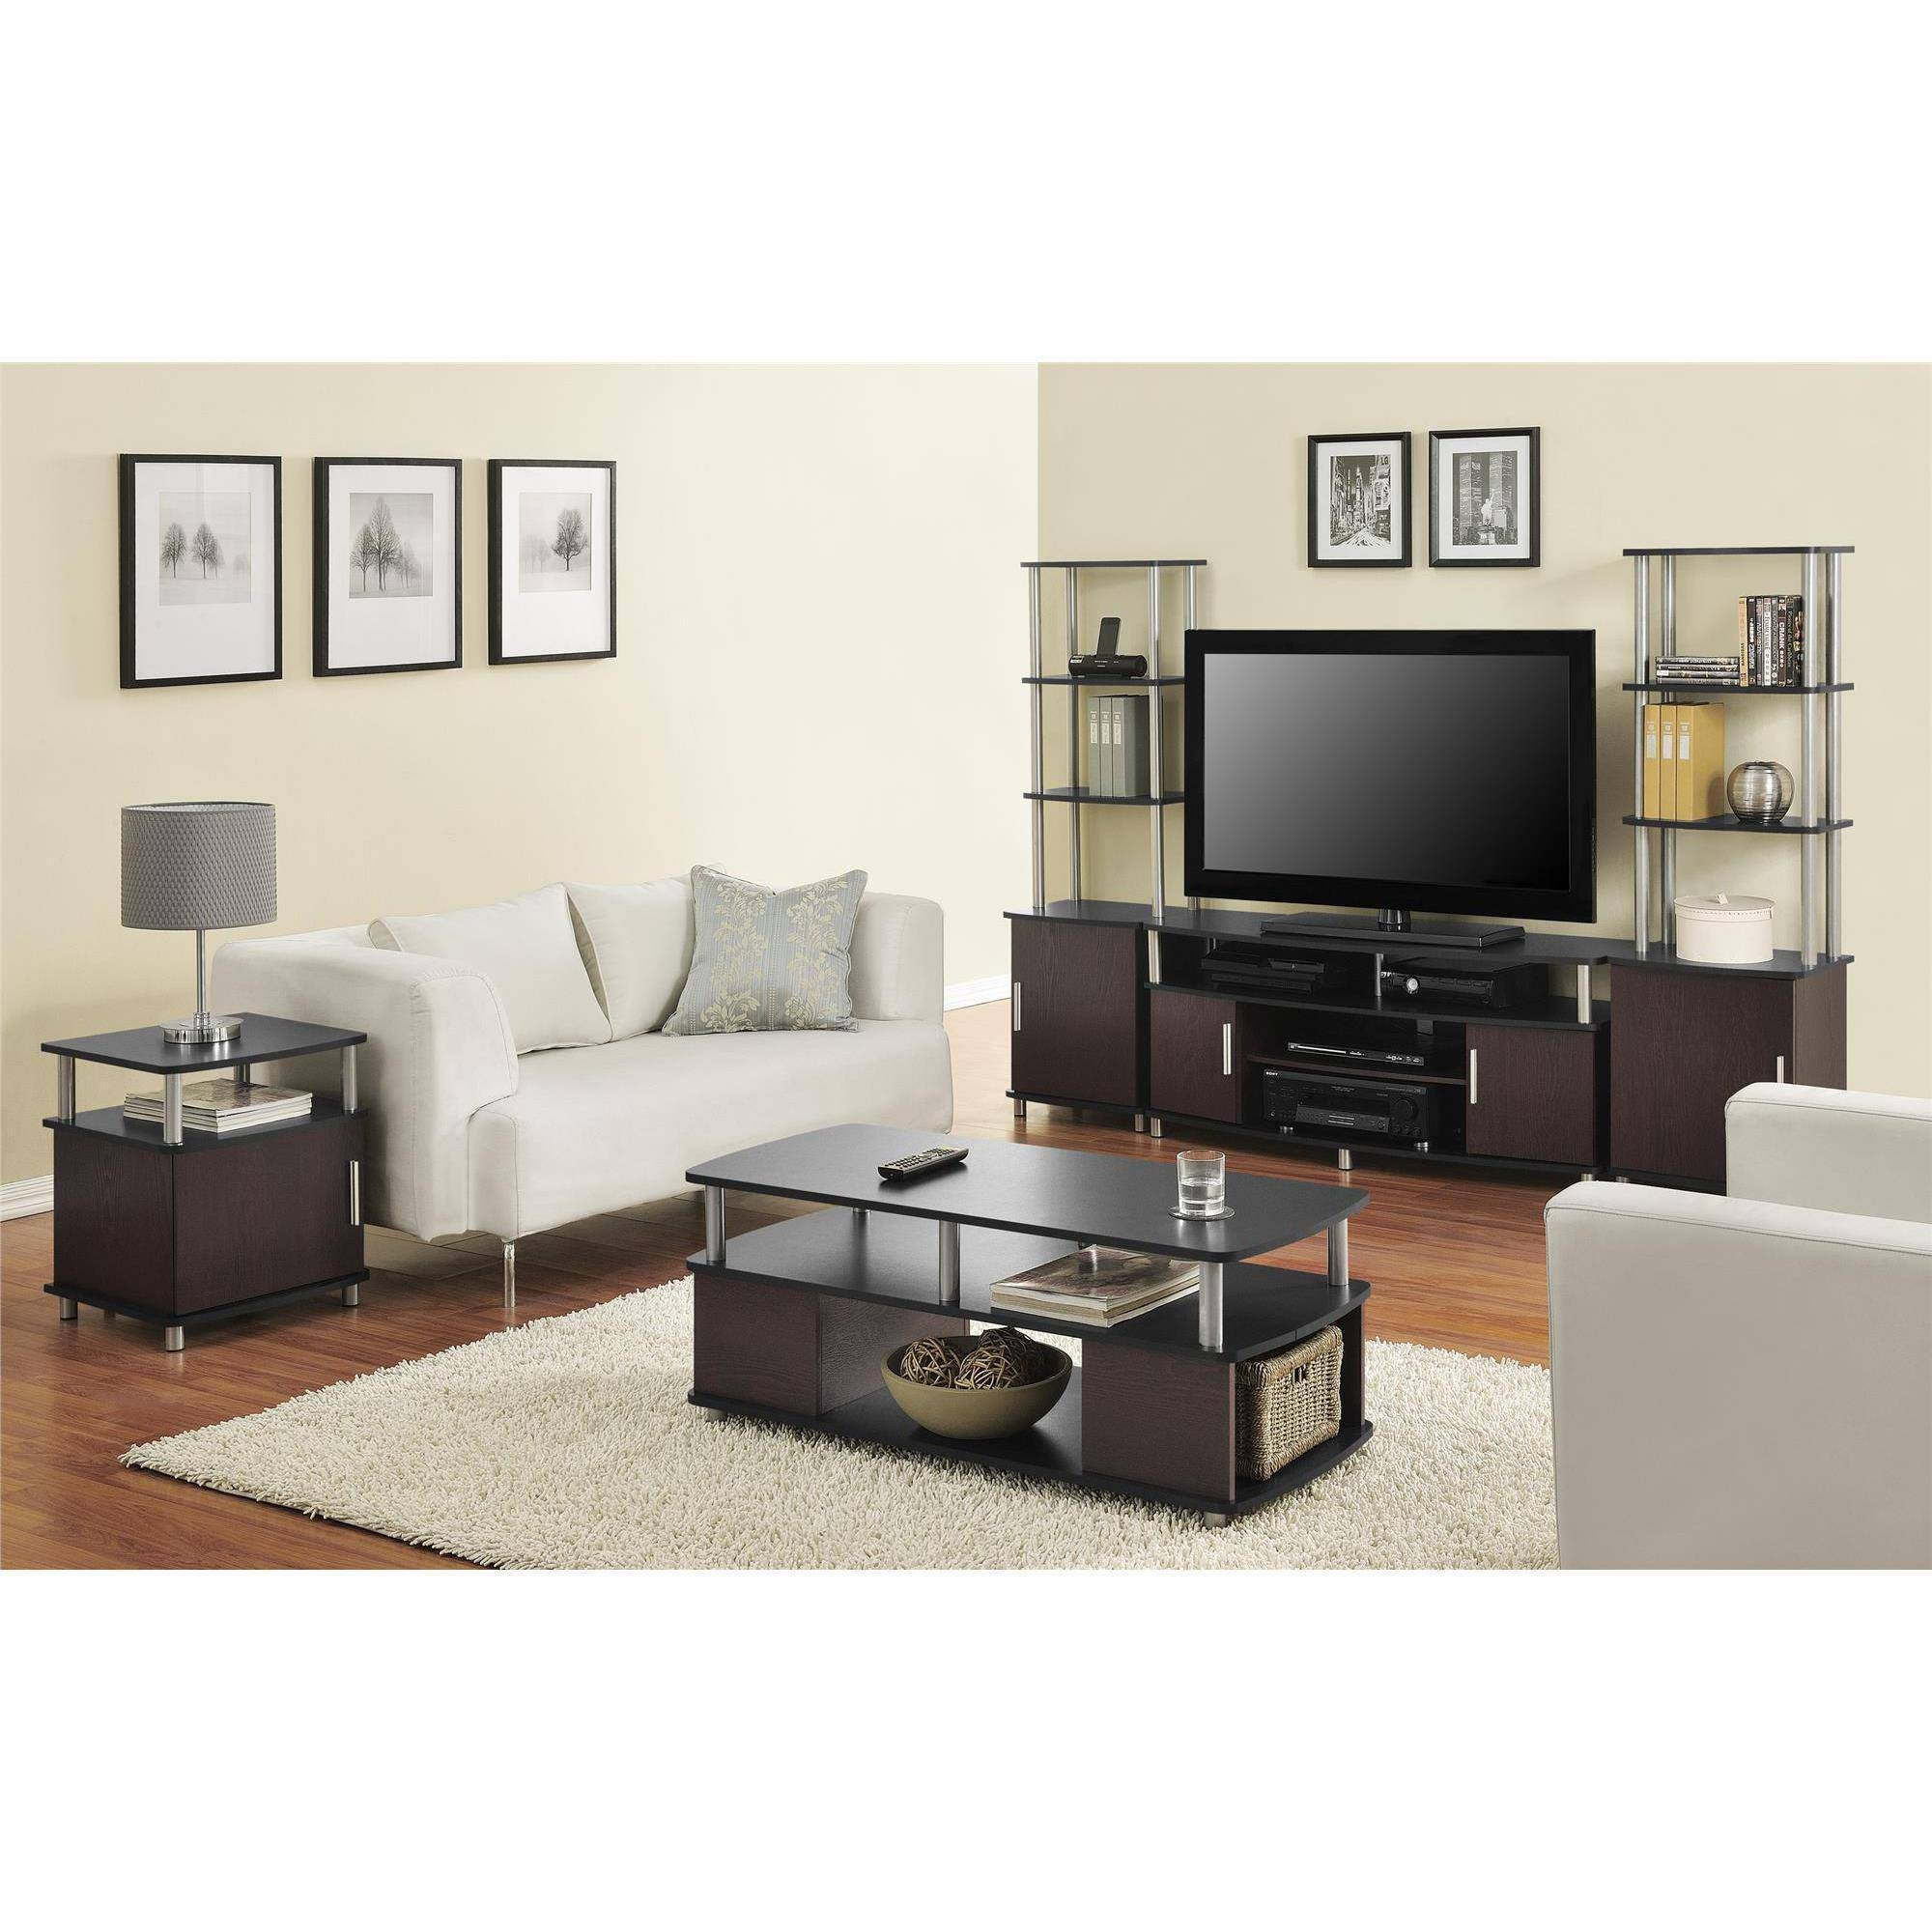 Ameriwood Home Carson Coffee Table, Espresso/silver - Walmart within Tv Stand Coffee Table Sets (Image 2 of 30)